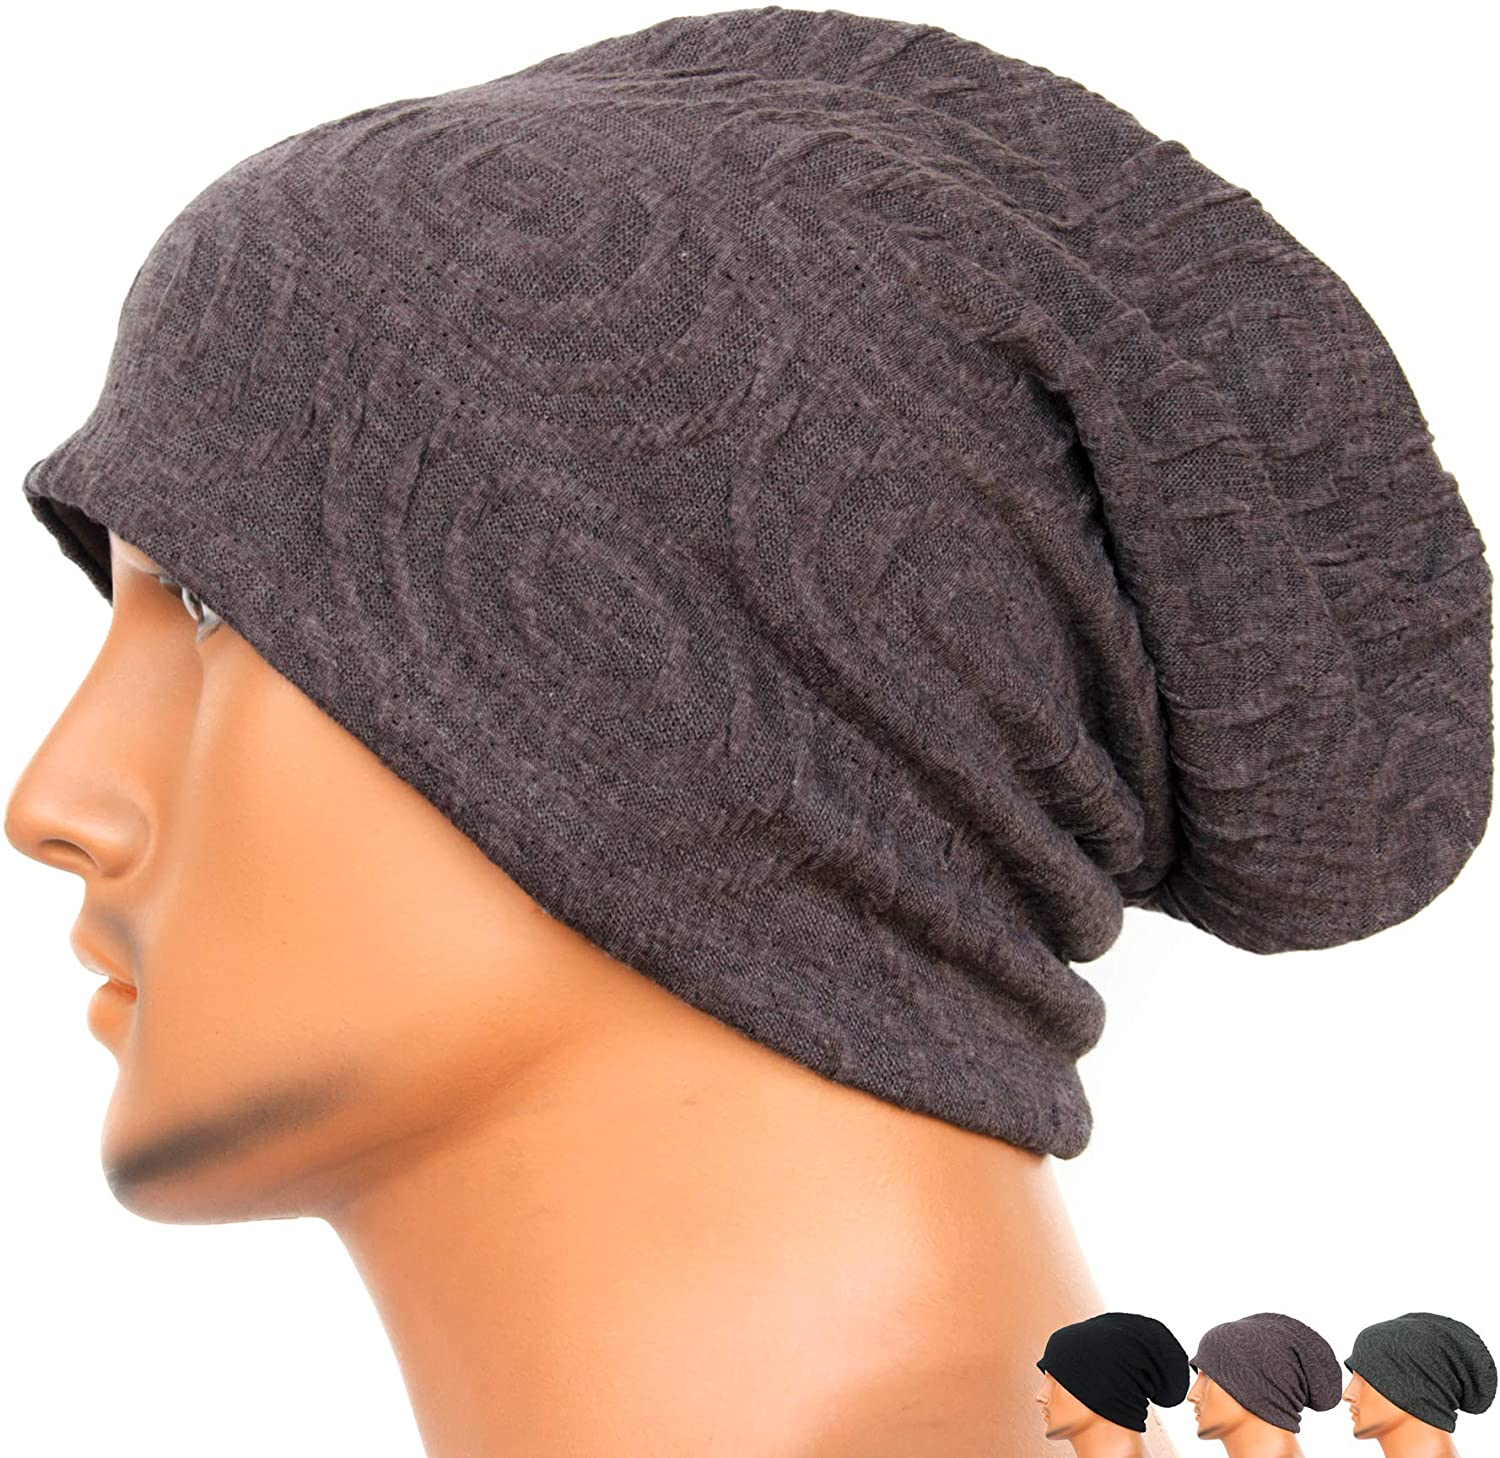 Rayna Fashion Men Women Summer Thin Slouchy Long Beanie Hat Cool Baggy  Skull Cap Stretchy Knit Hat Lightweight Black at Amazon Men s Clothing  store  e3d7f6d45f8